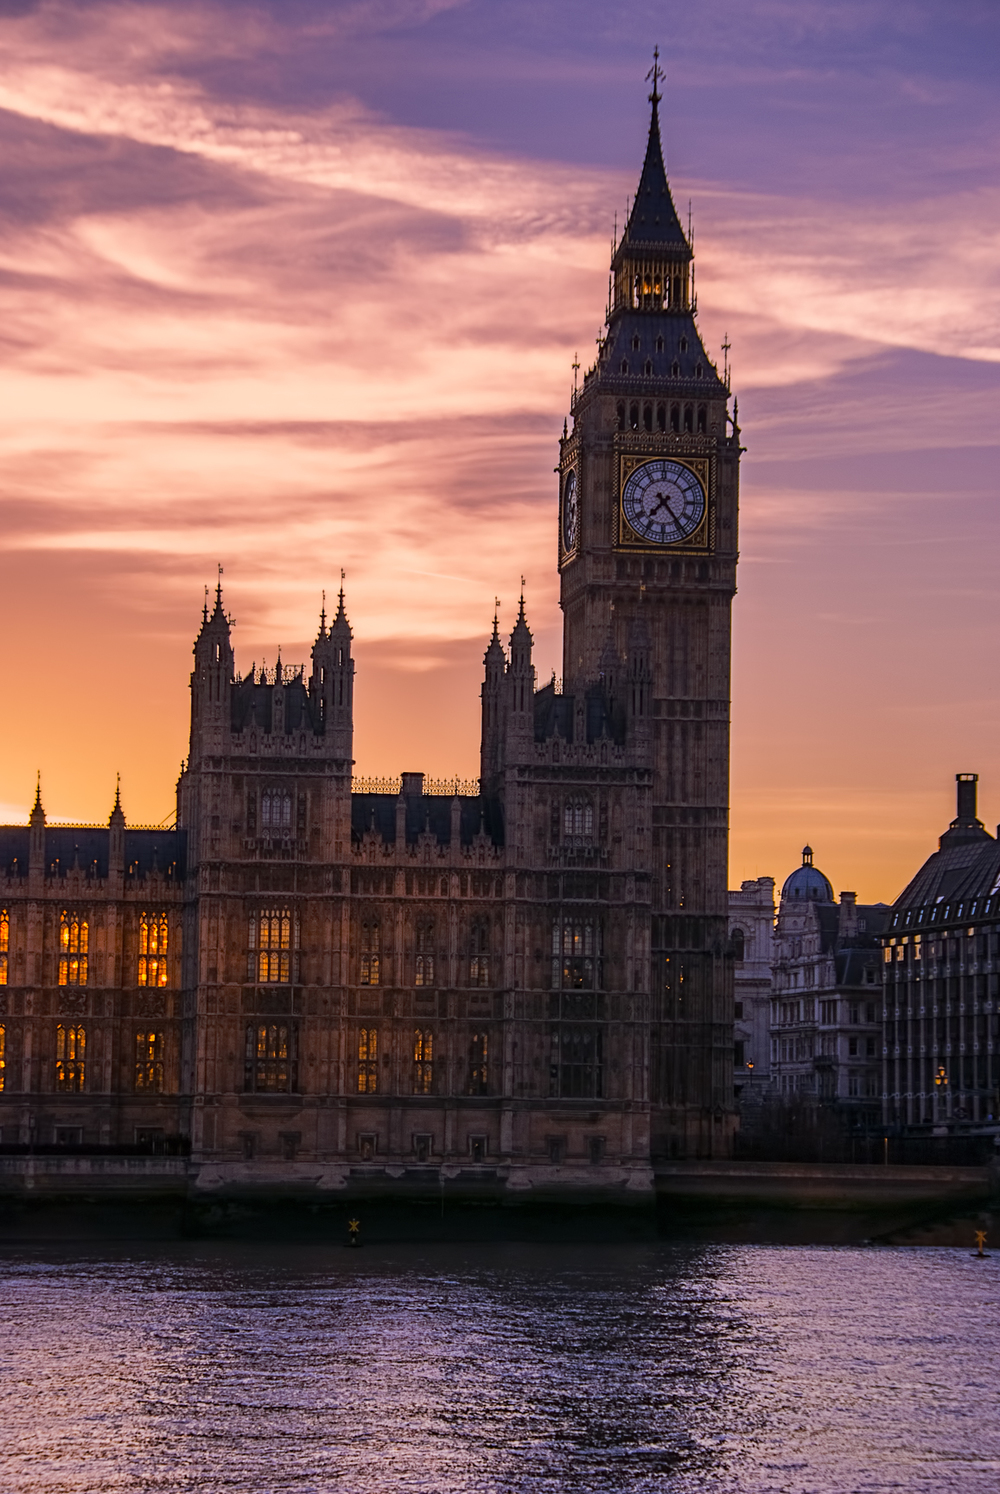 A stunning sunset over Big Ben!